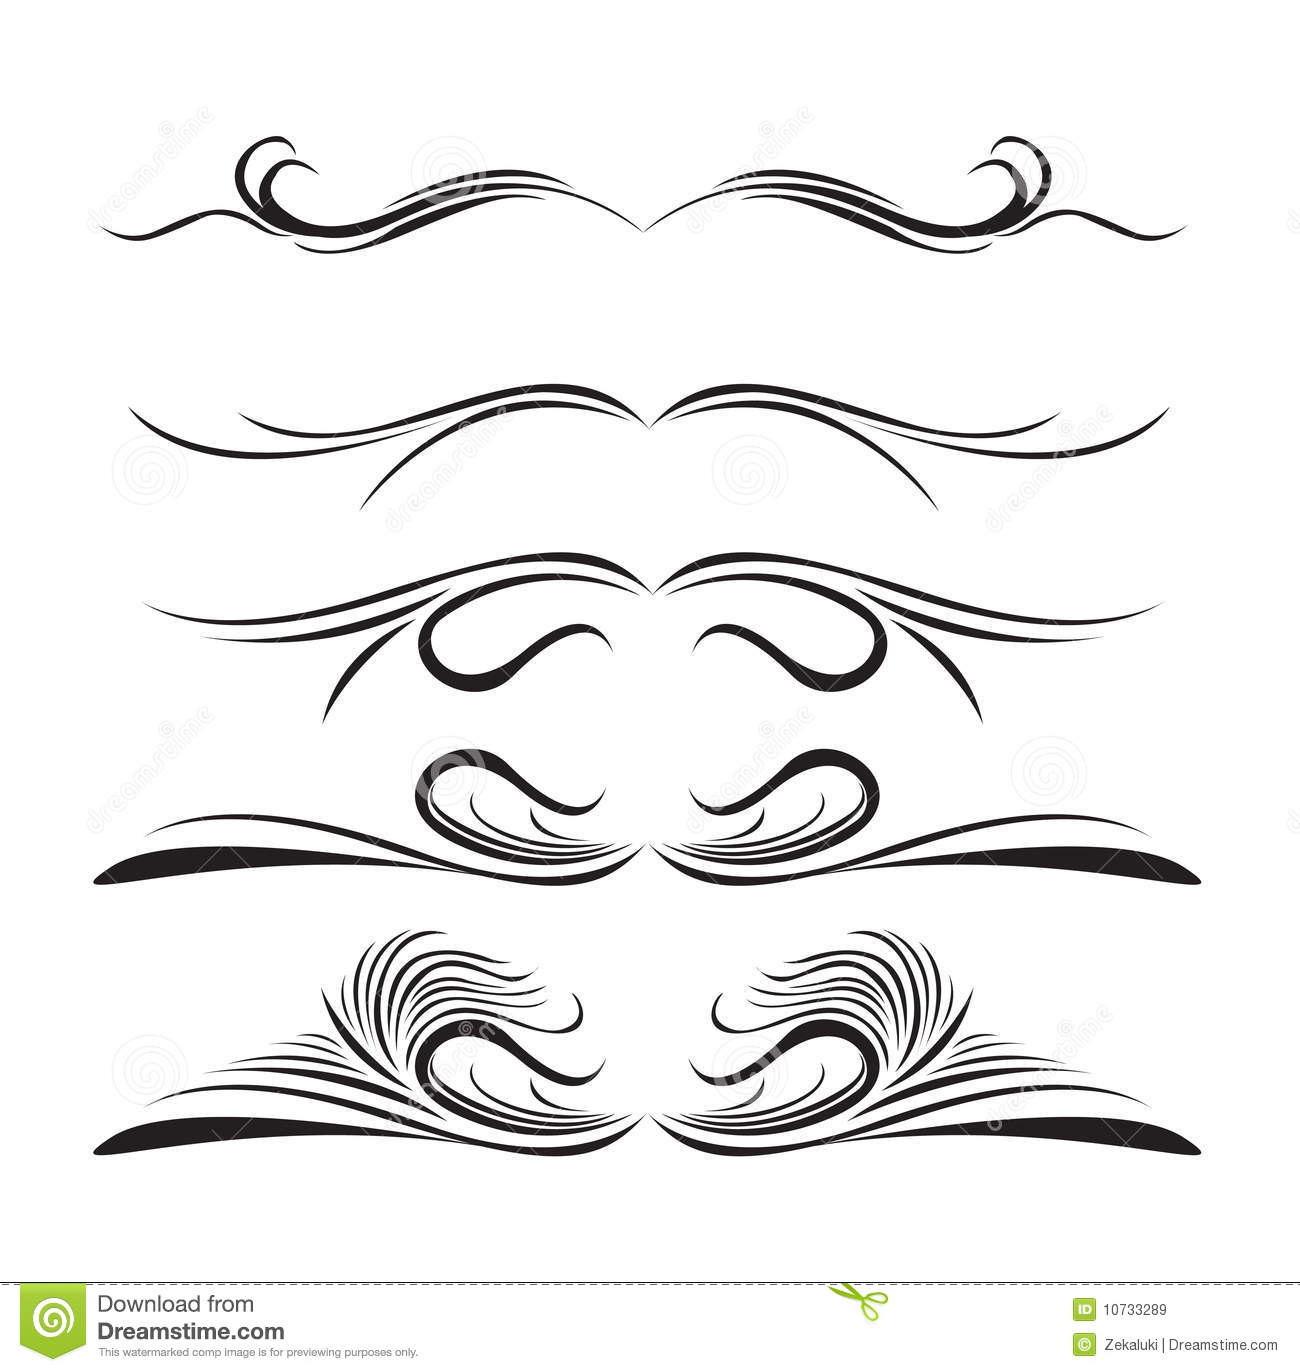 Line With Design : Lines design elements of different styles royalty free